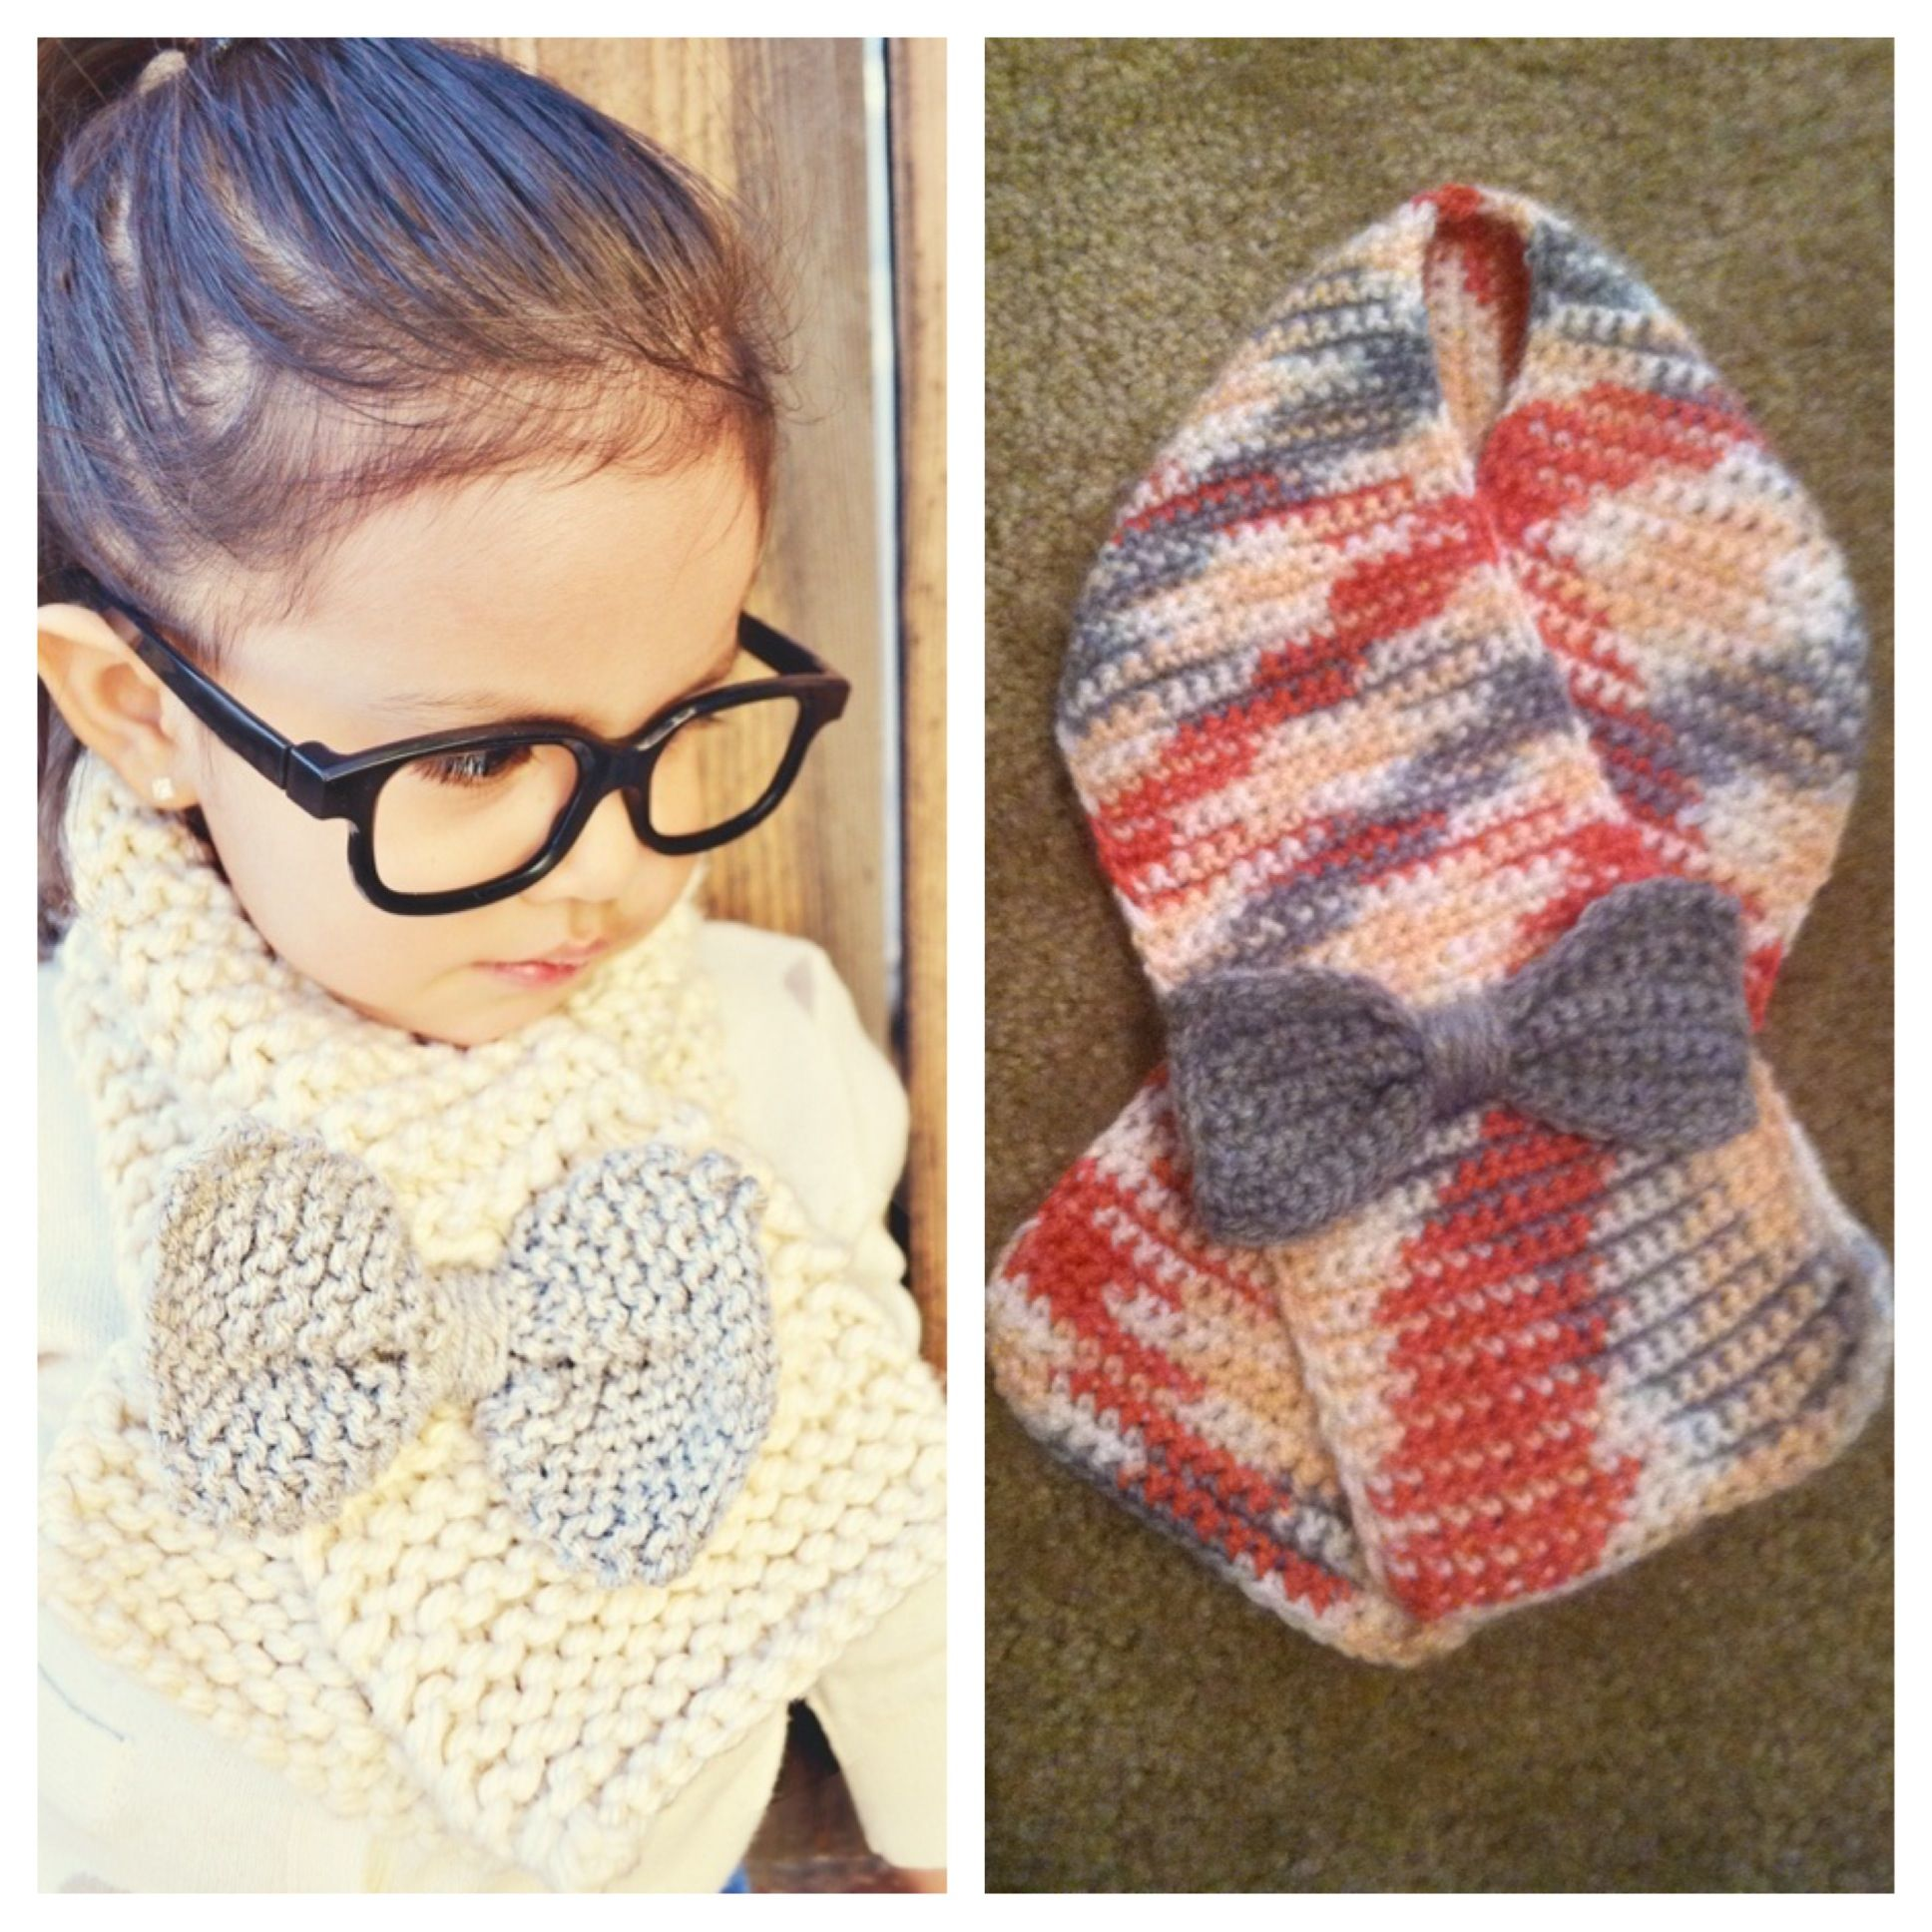 Crocheting Problems : Crochet Lil girl scarf! Crochet_Problems Pinterest